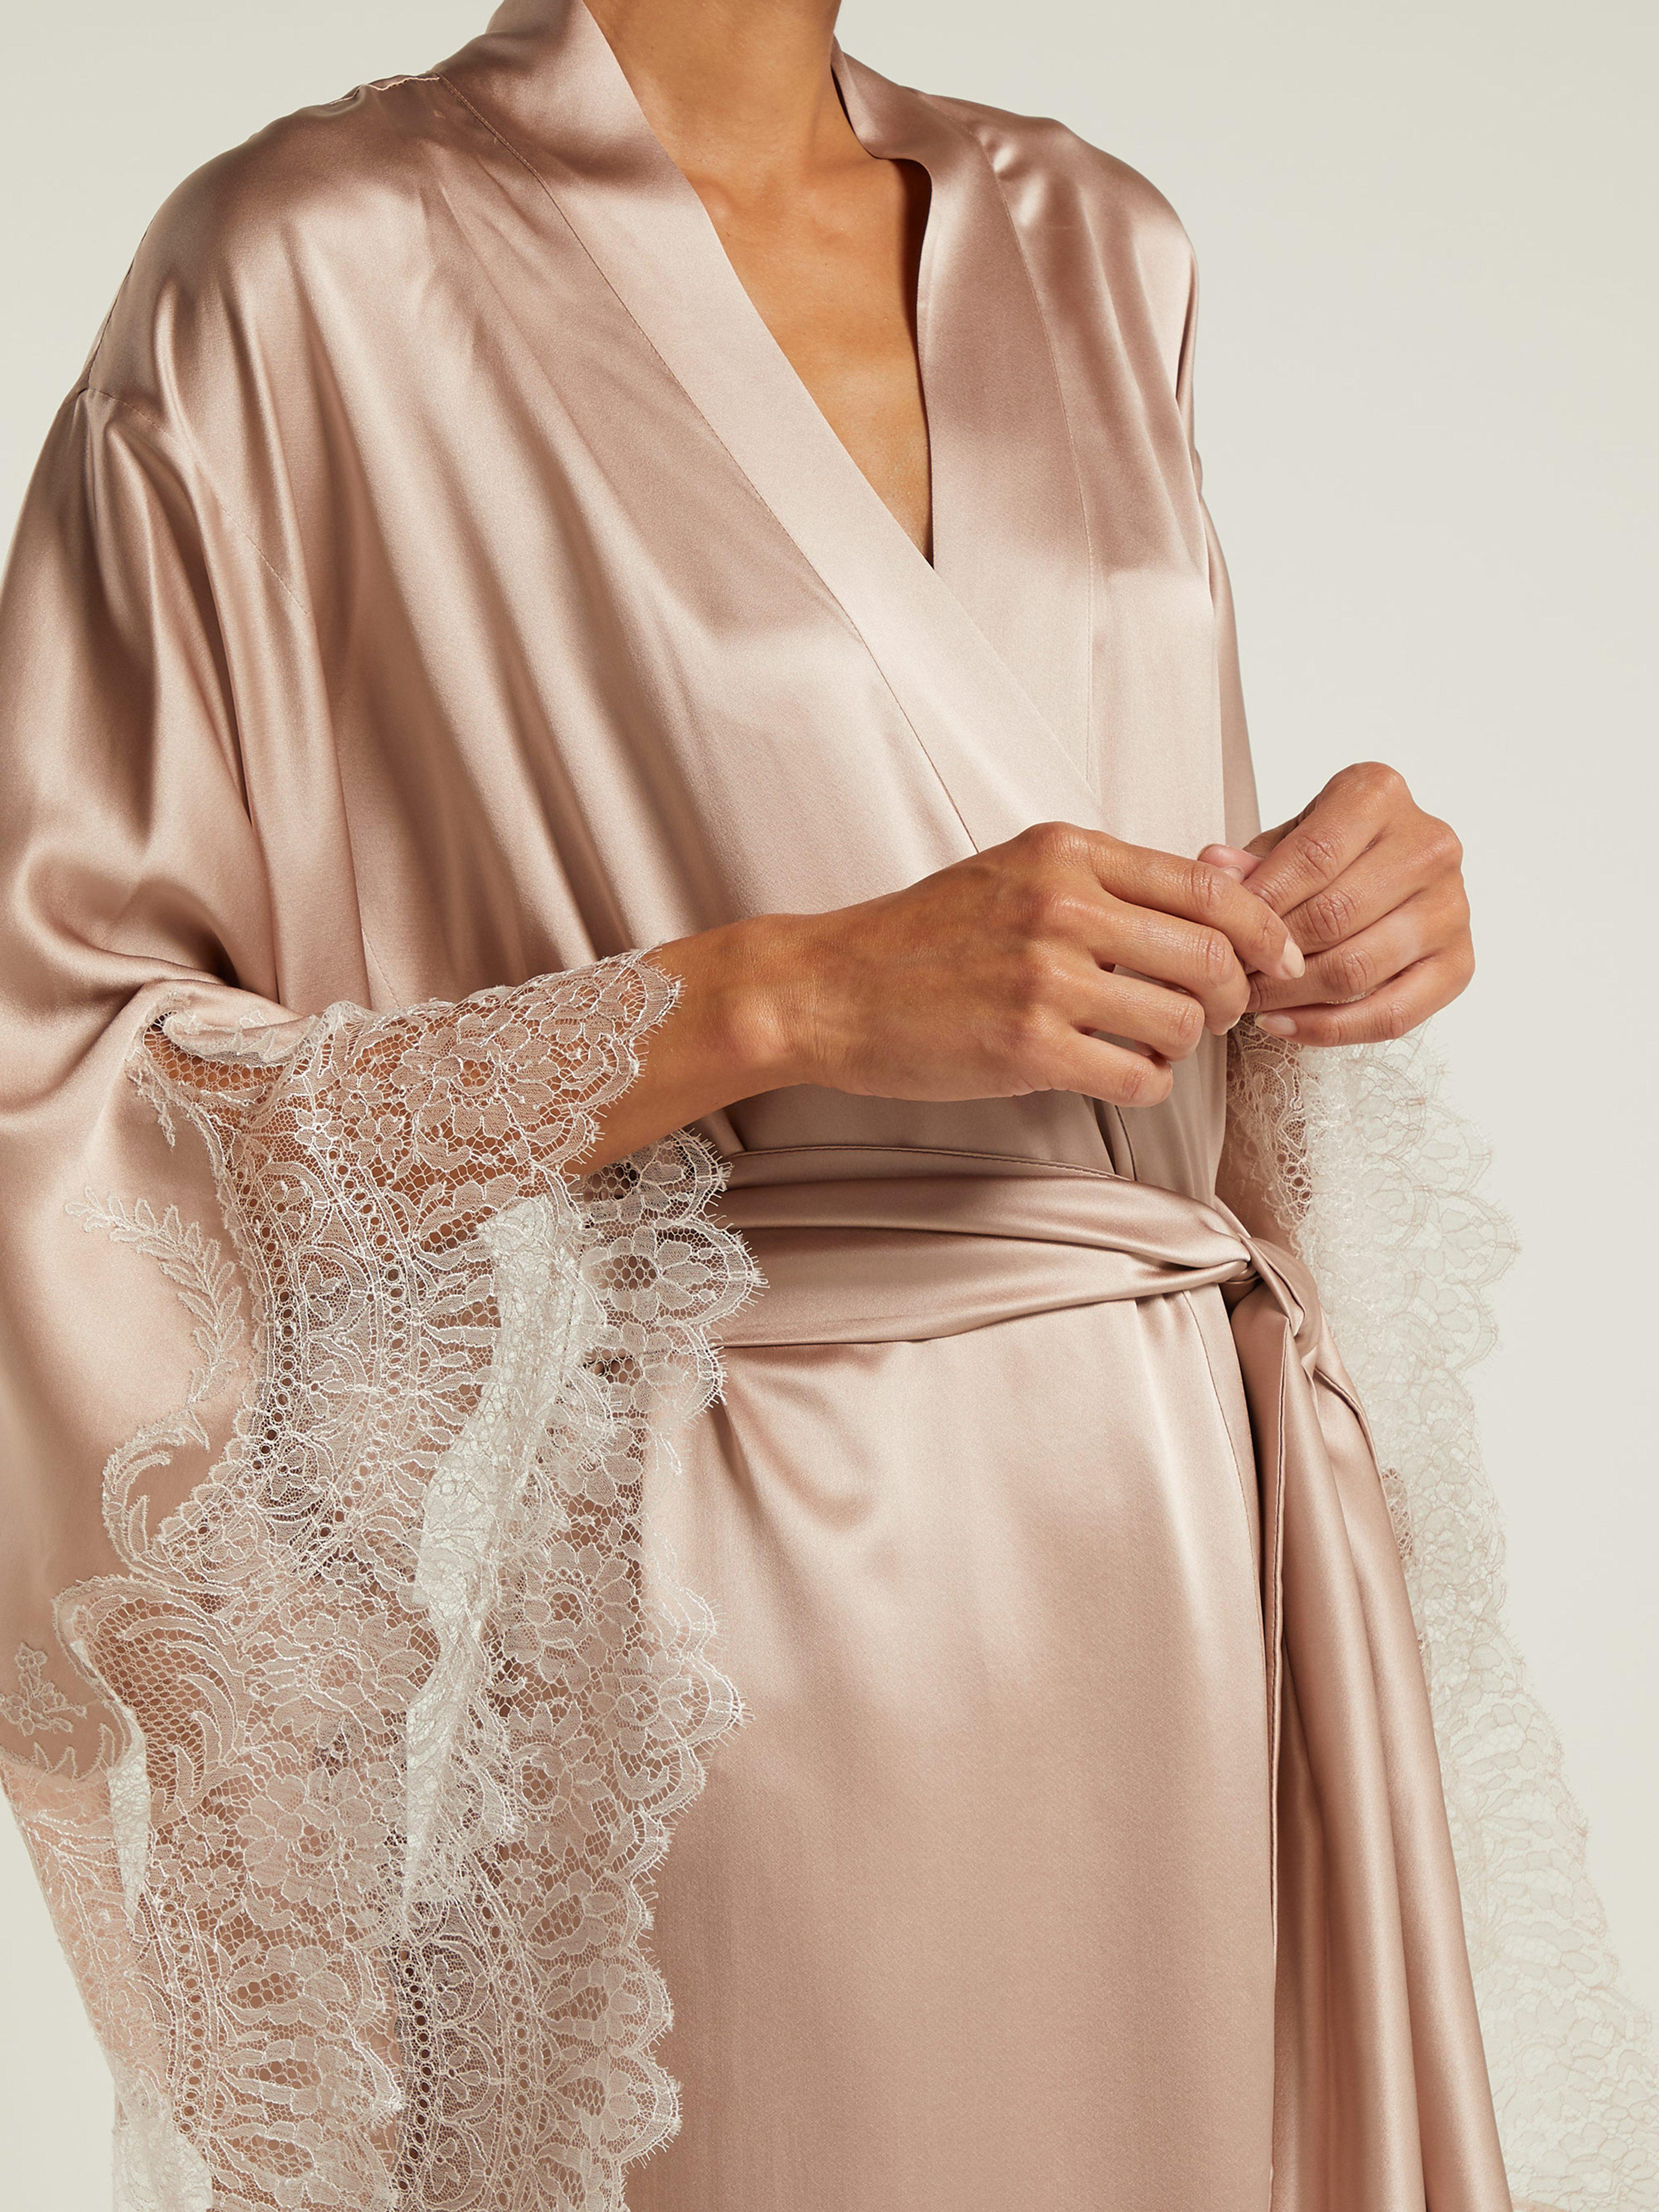 2f8eeafb575 Carine Gilson Lace Embroidered Silk Satin Robe in Pink - Lyst